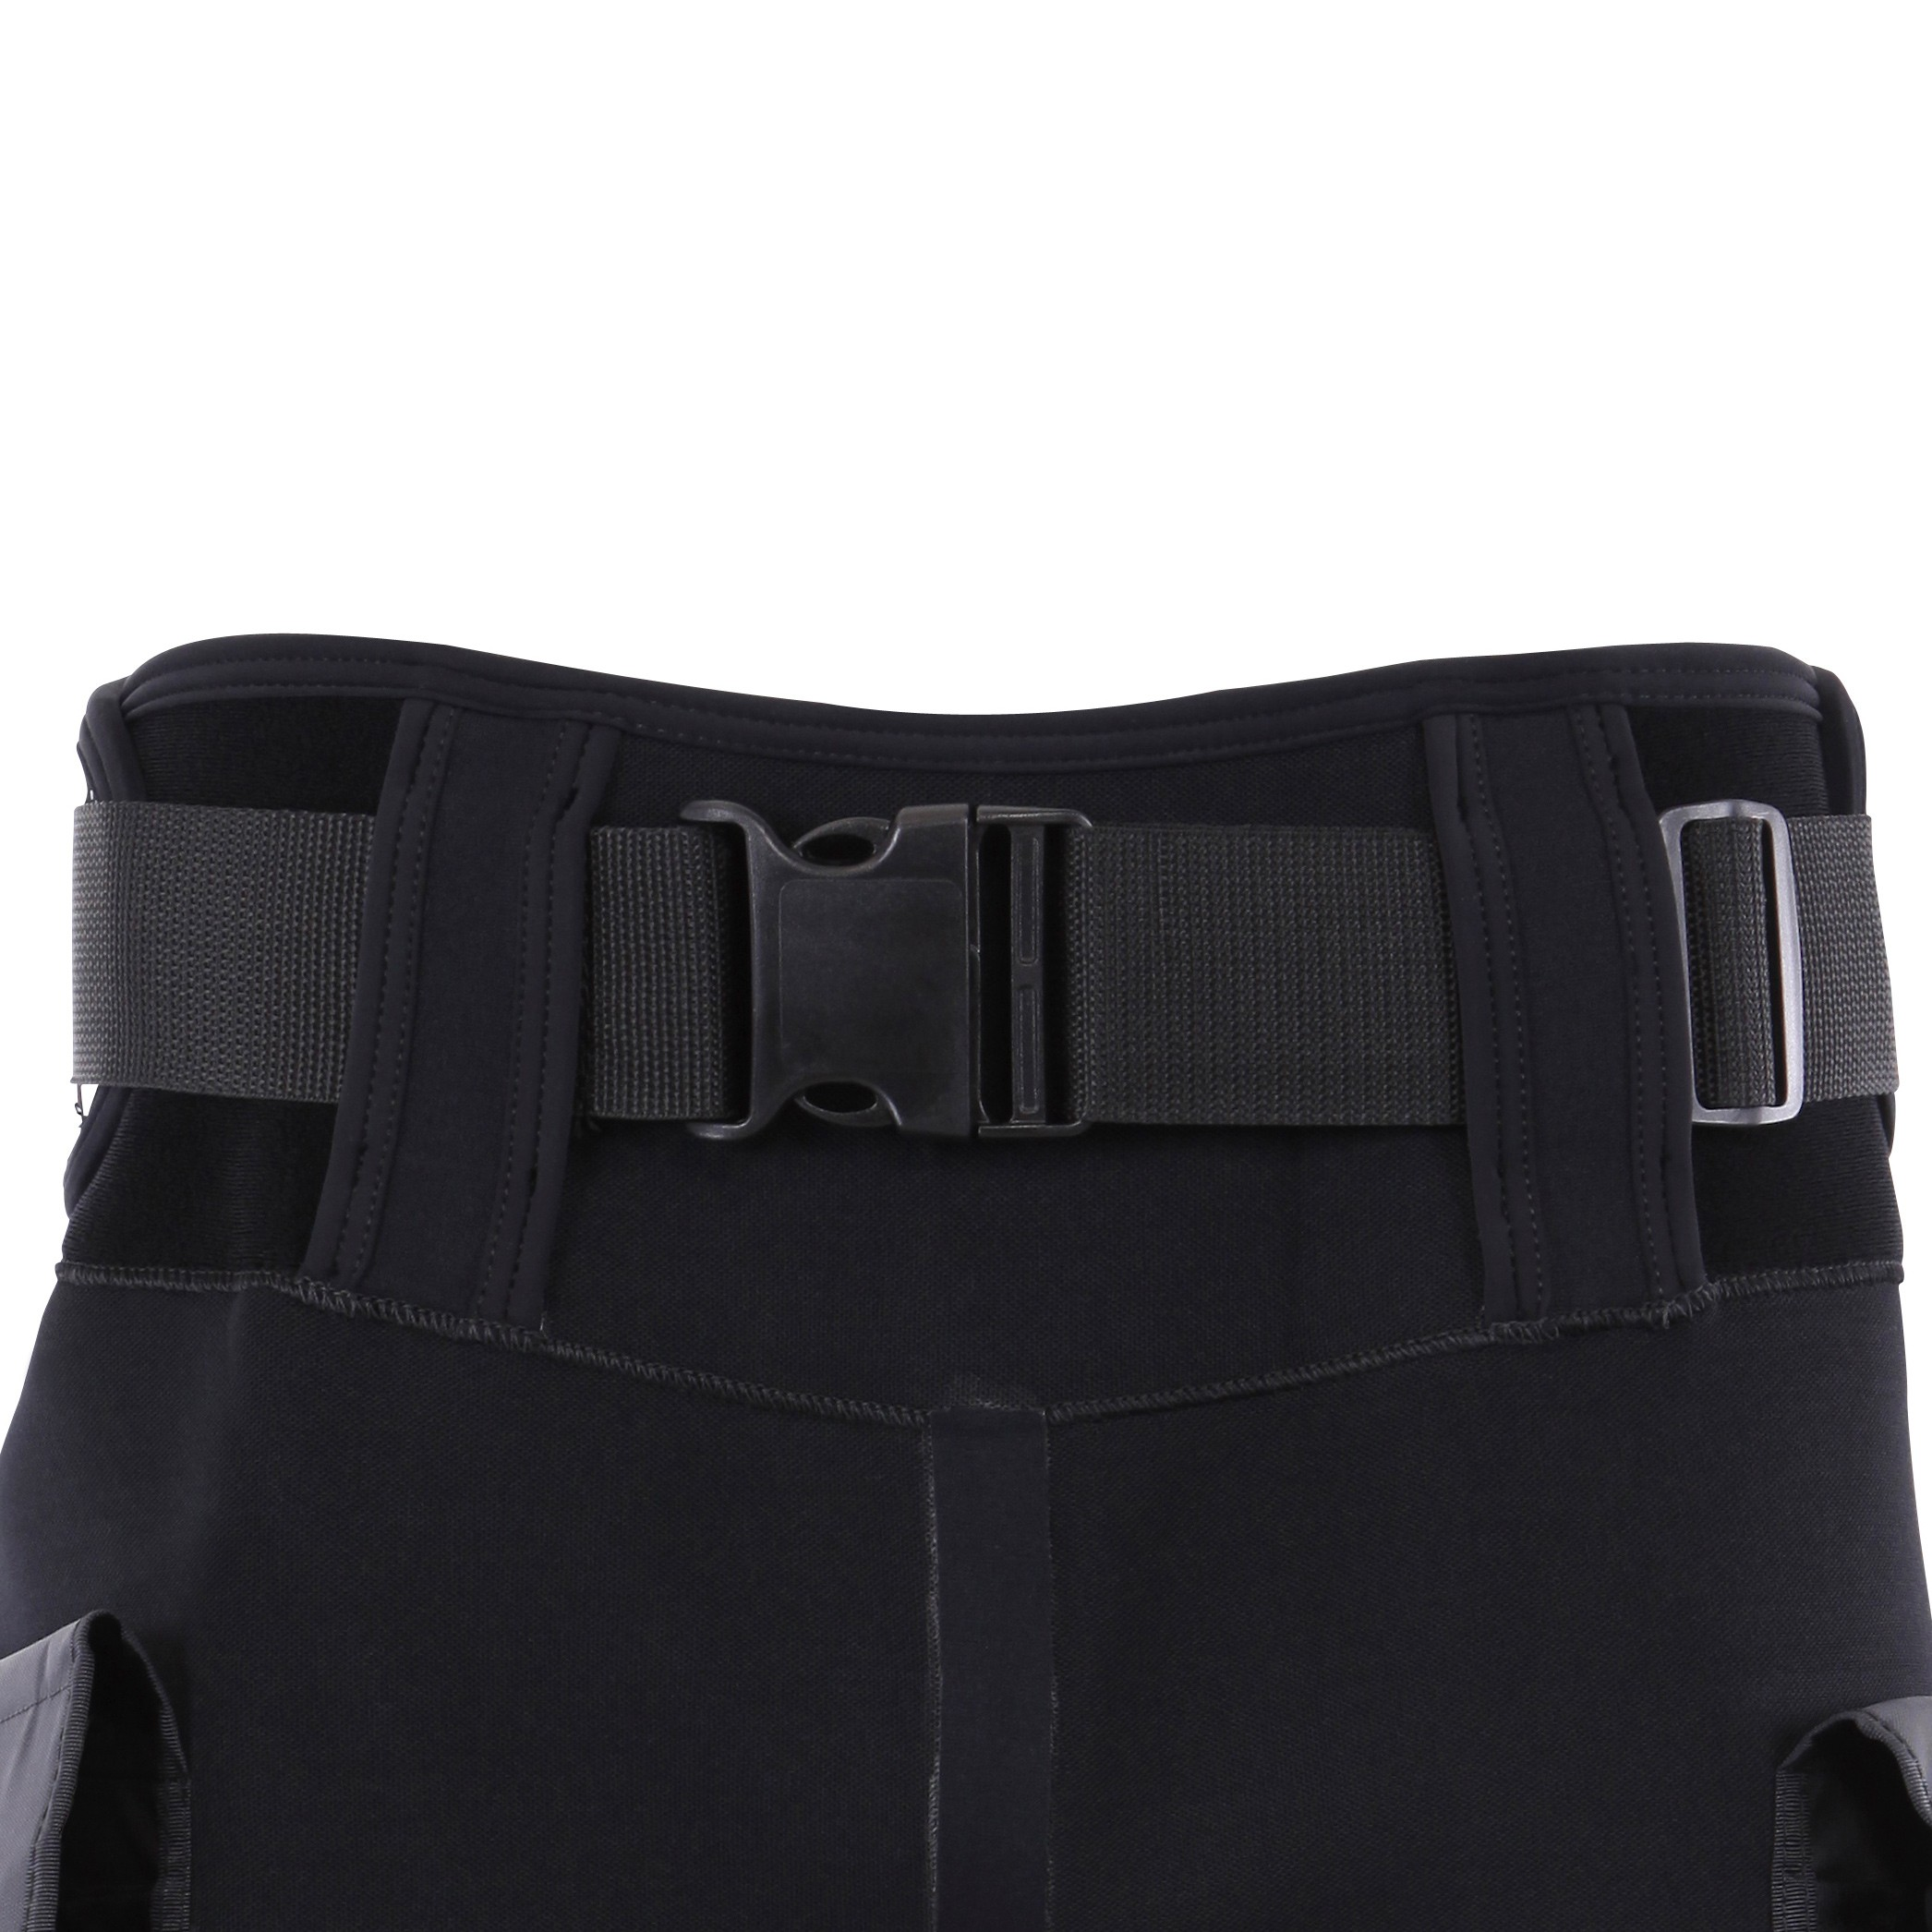 Apeks Tech Shorts Buckle